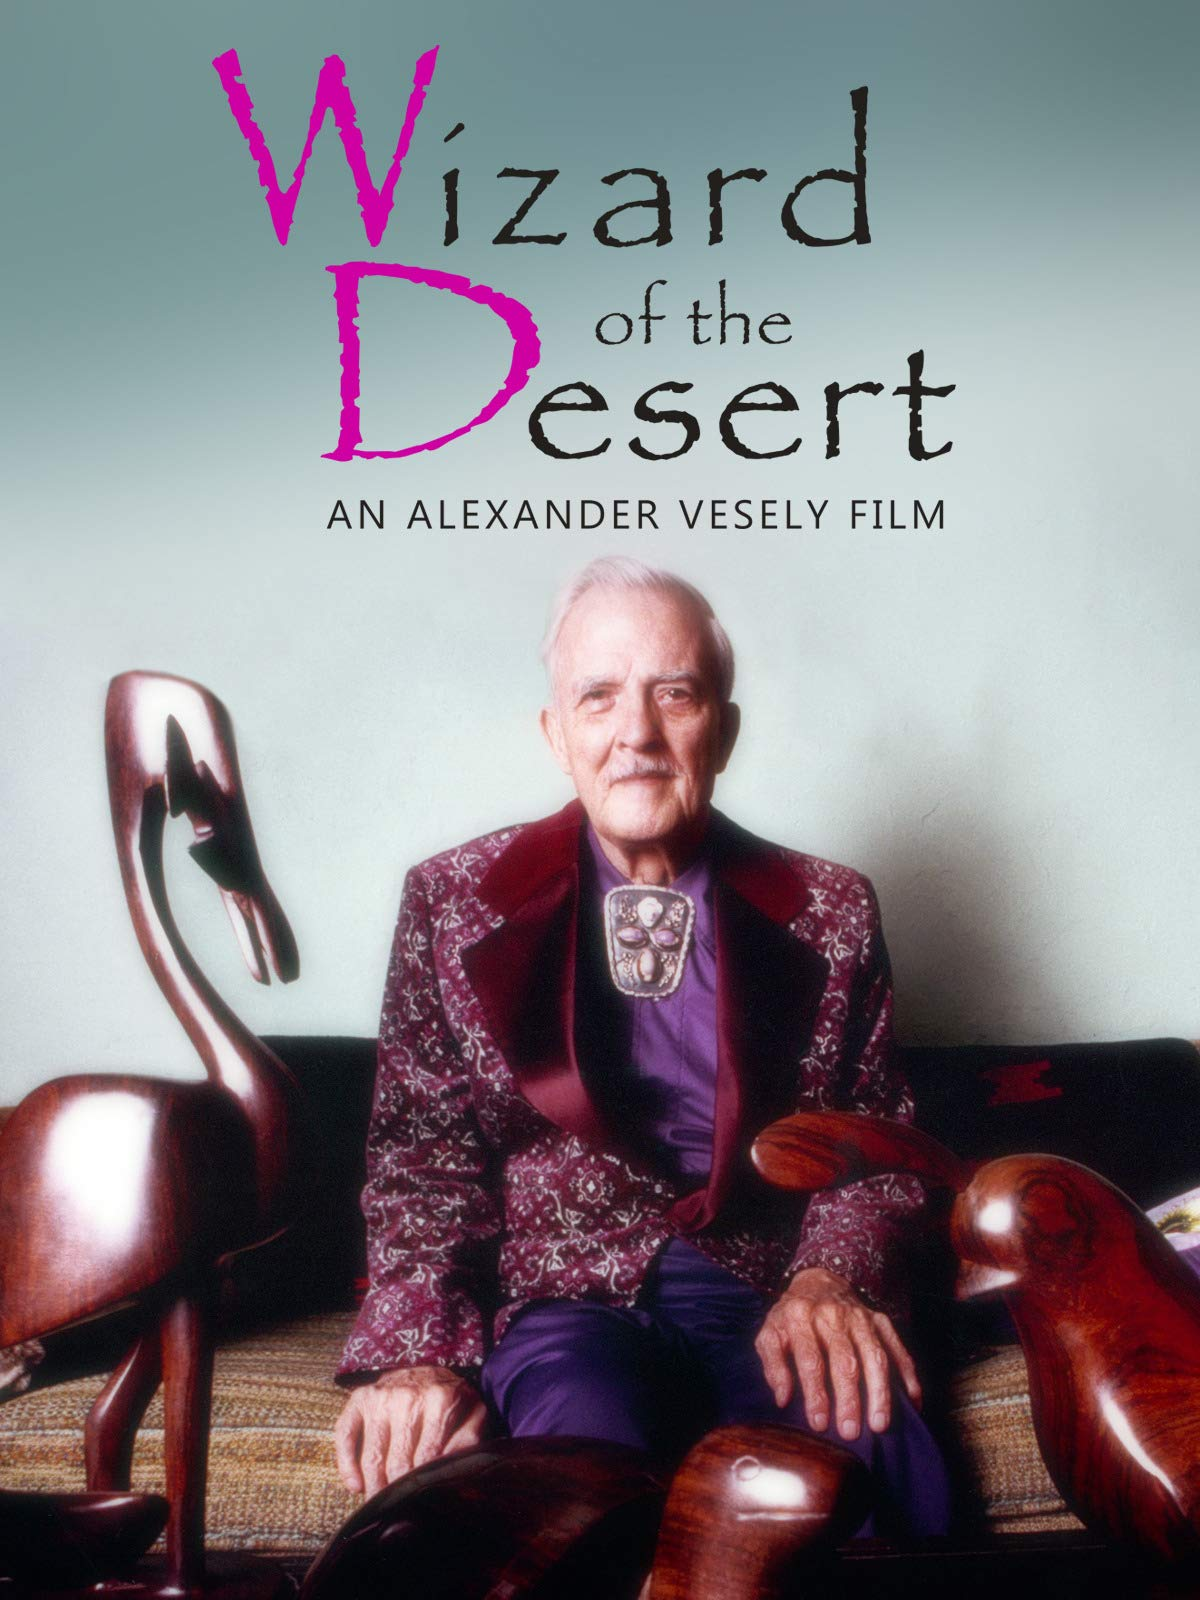 Wizard of the desert - Film d' Alexander VESELY